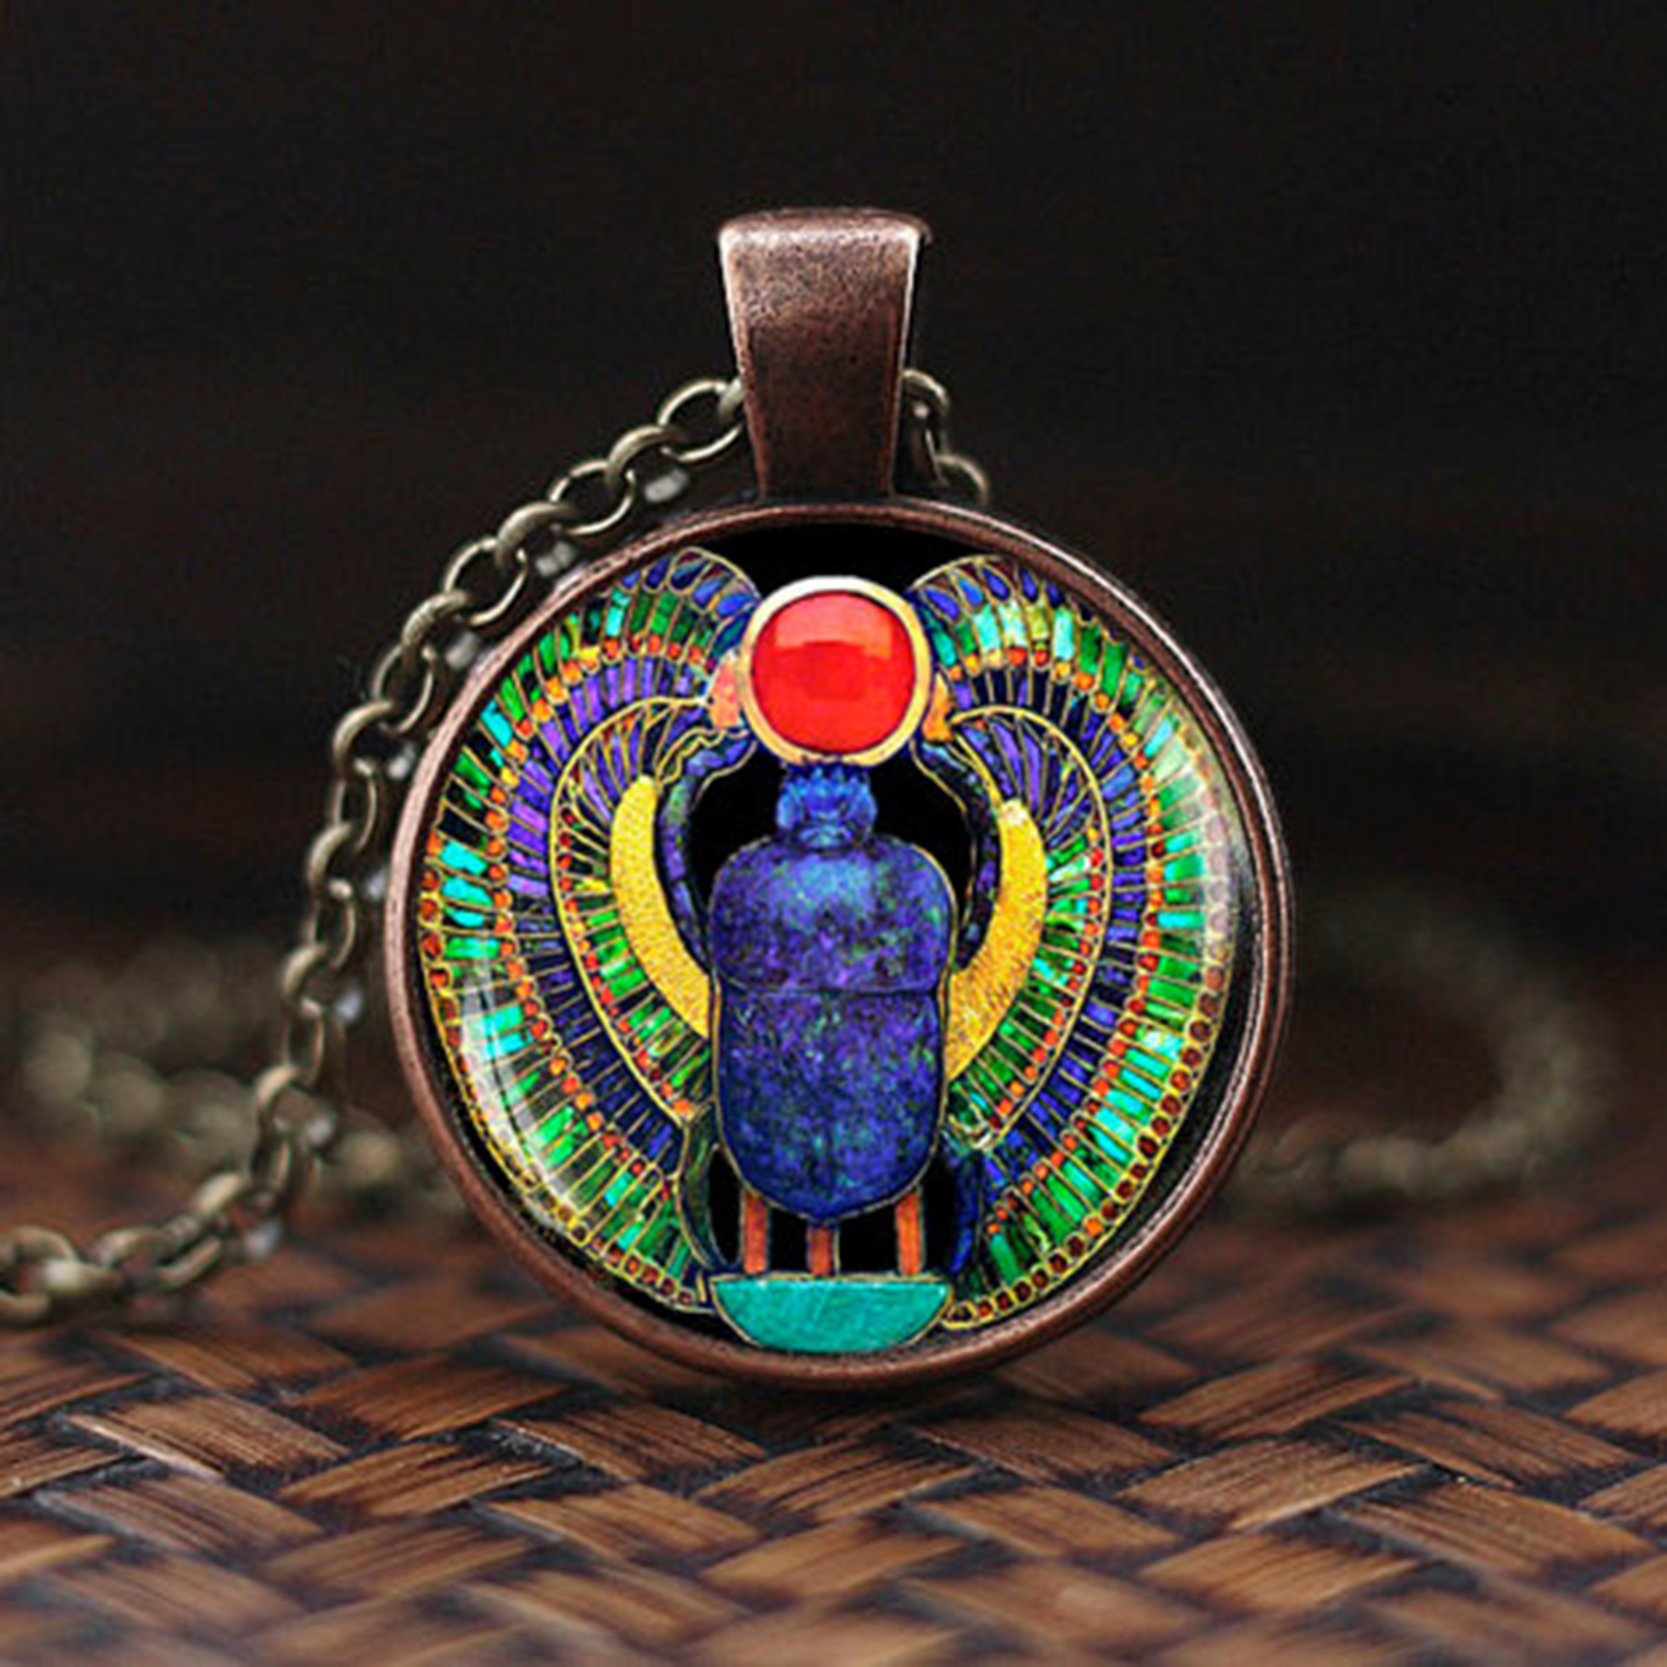 Necklace for Men Symbol Of Strength Egyptian Scarab Glass Dome Pendant Necklace Ancient Egypt Jewelry Fashion Charm Women Gift